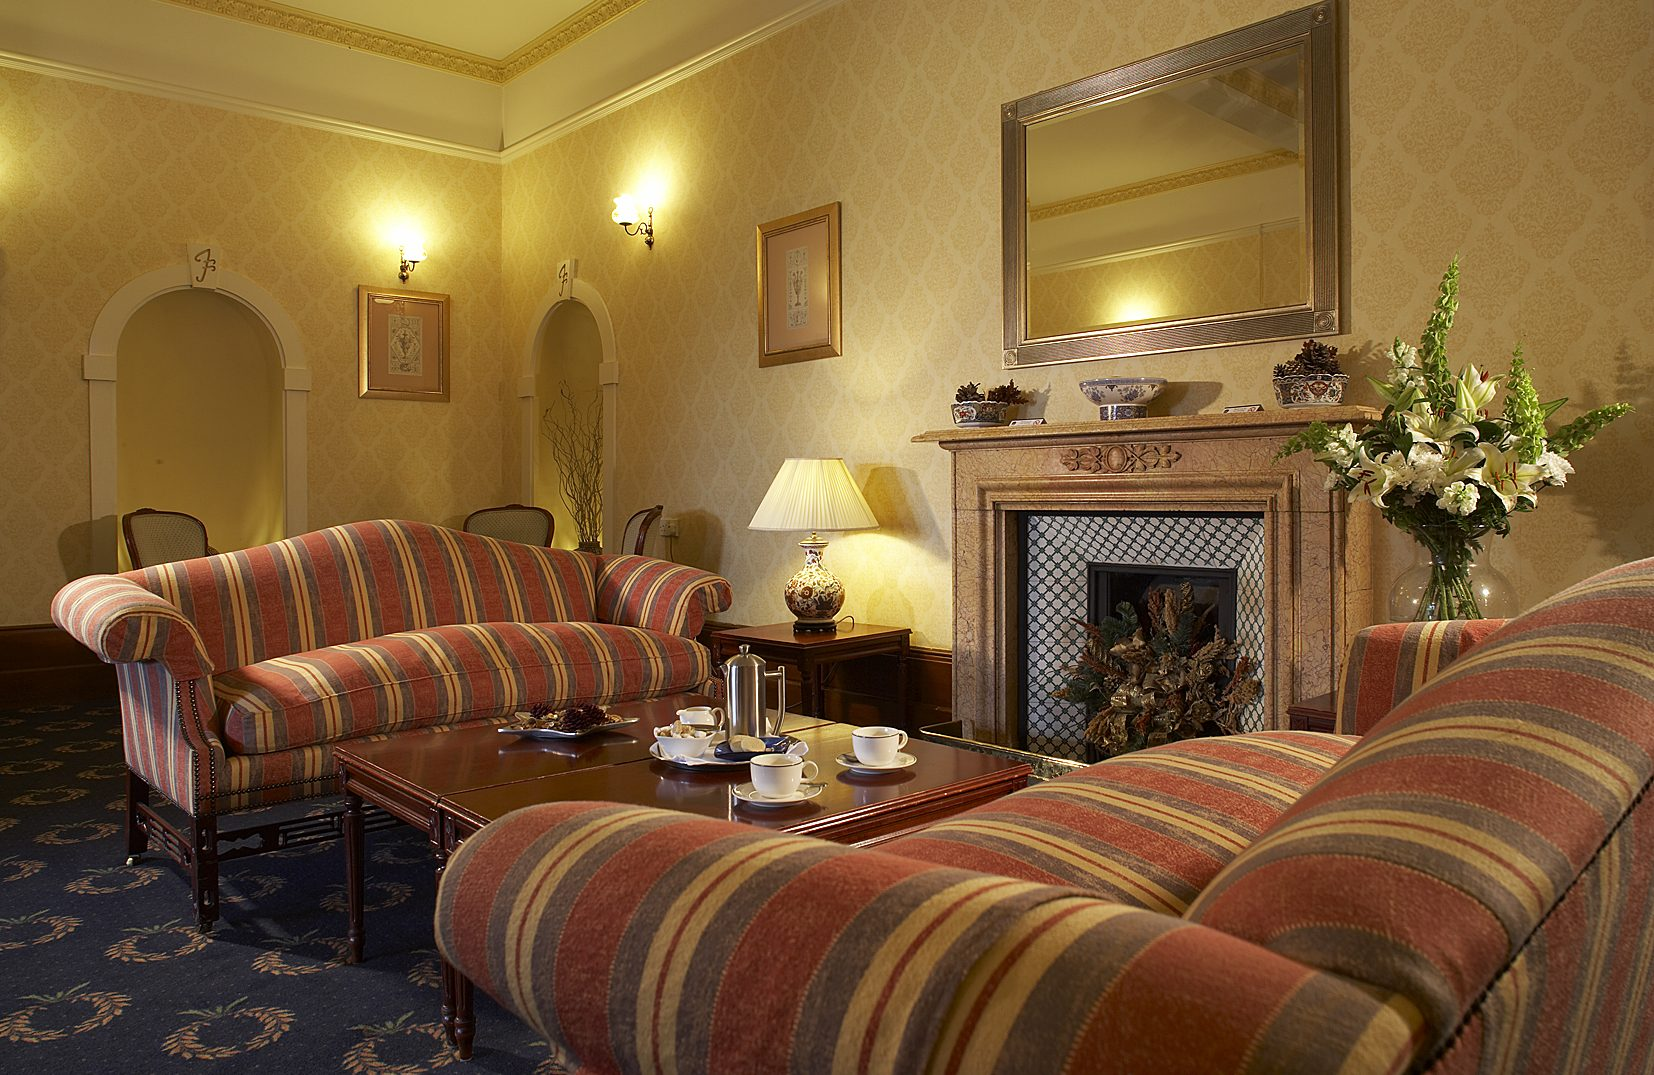 dog friendly hotels west wales, places to eat lampeter